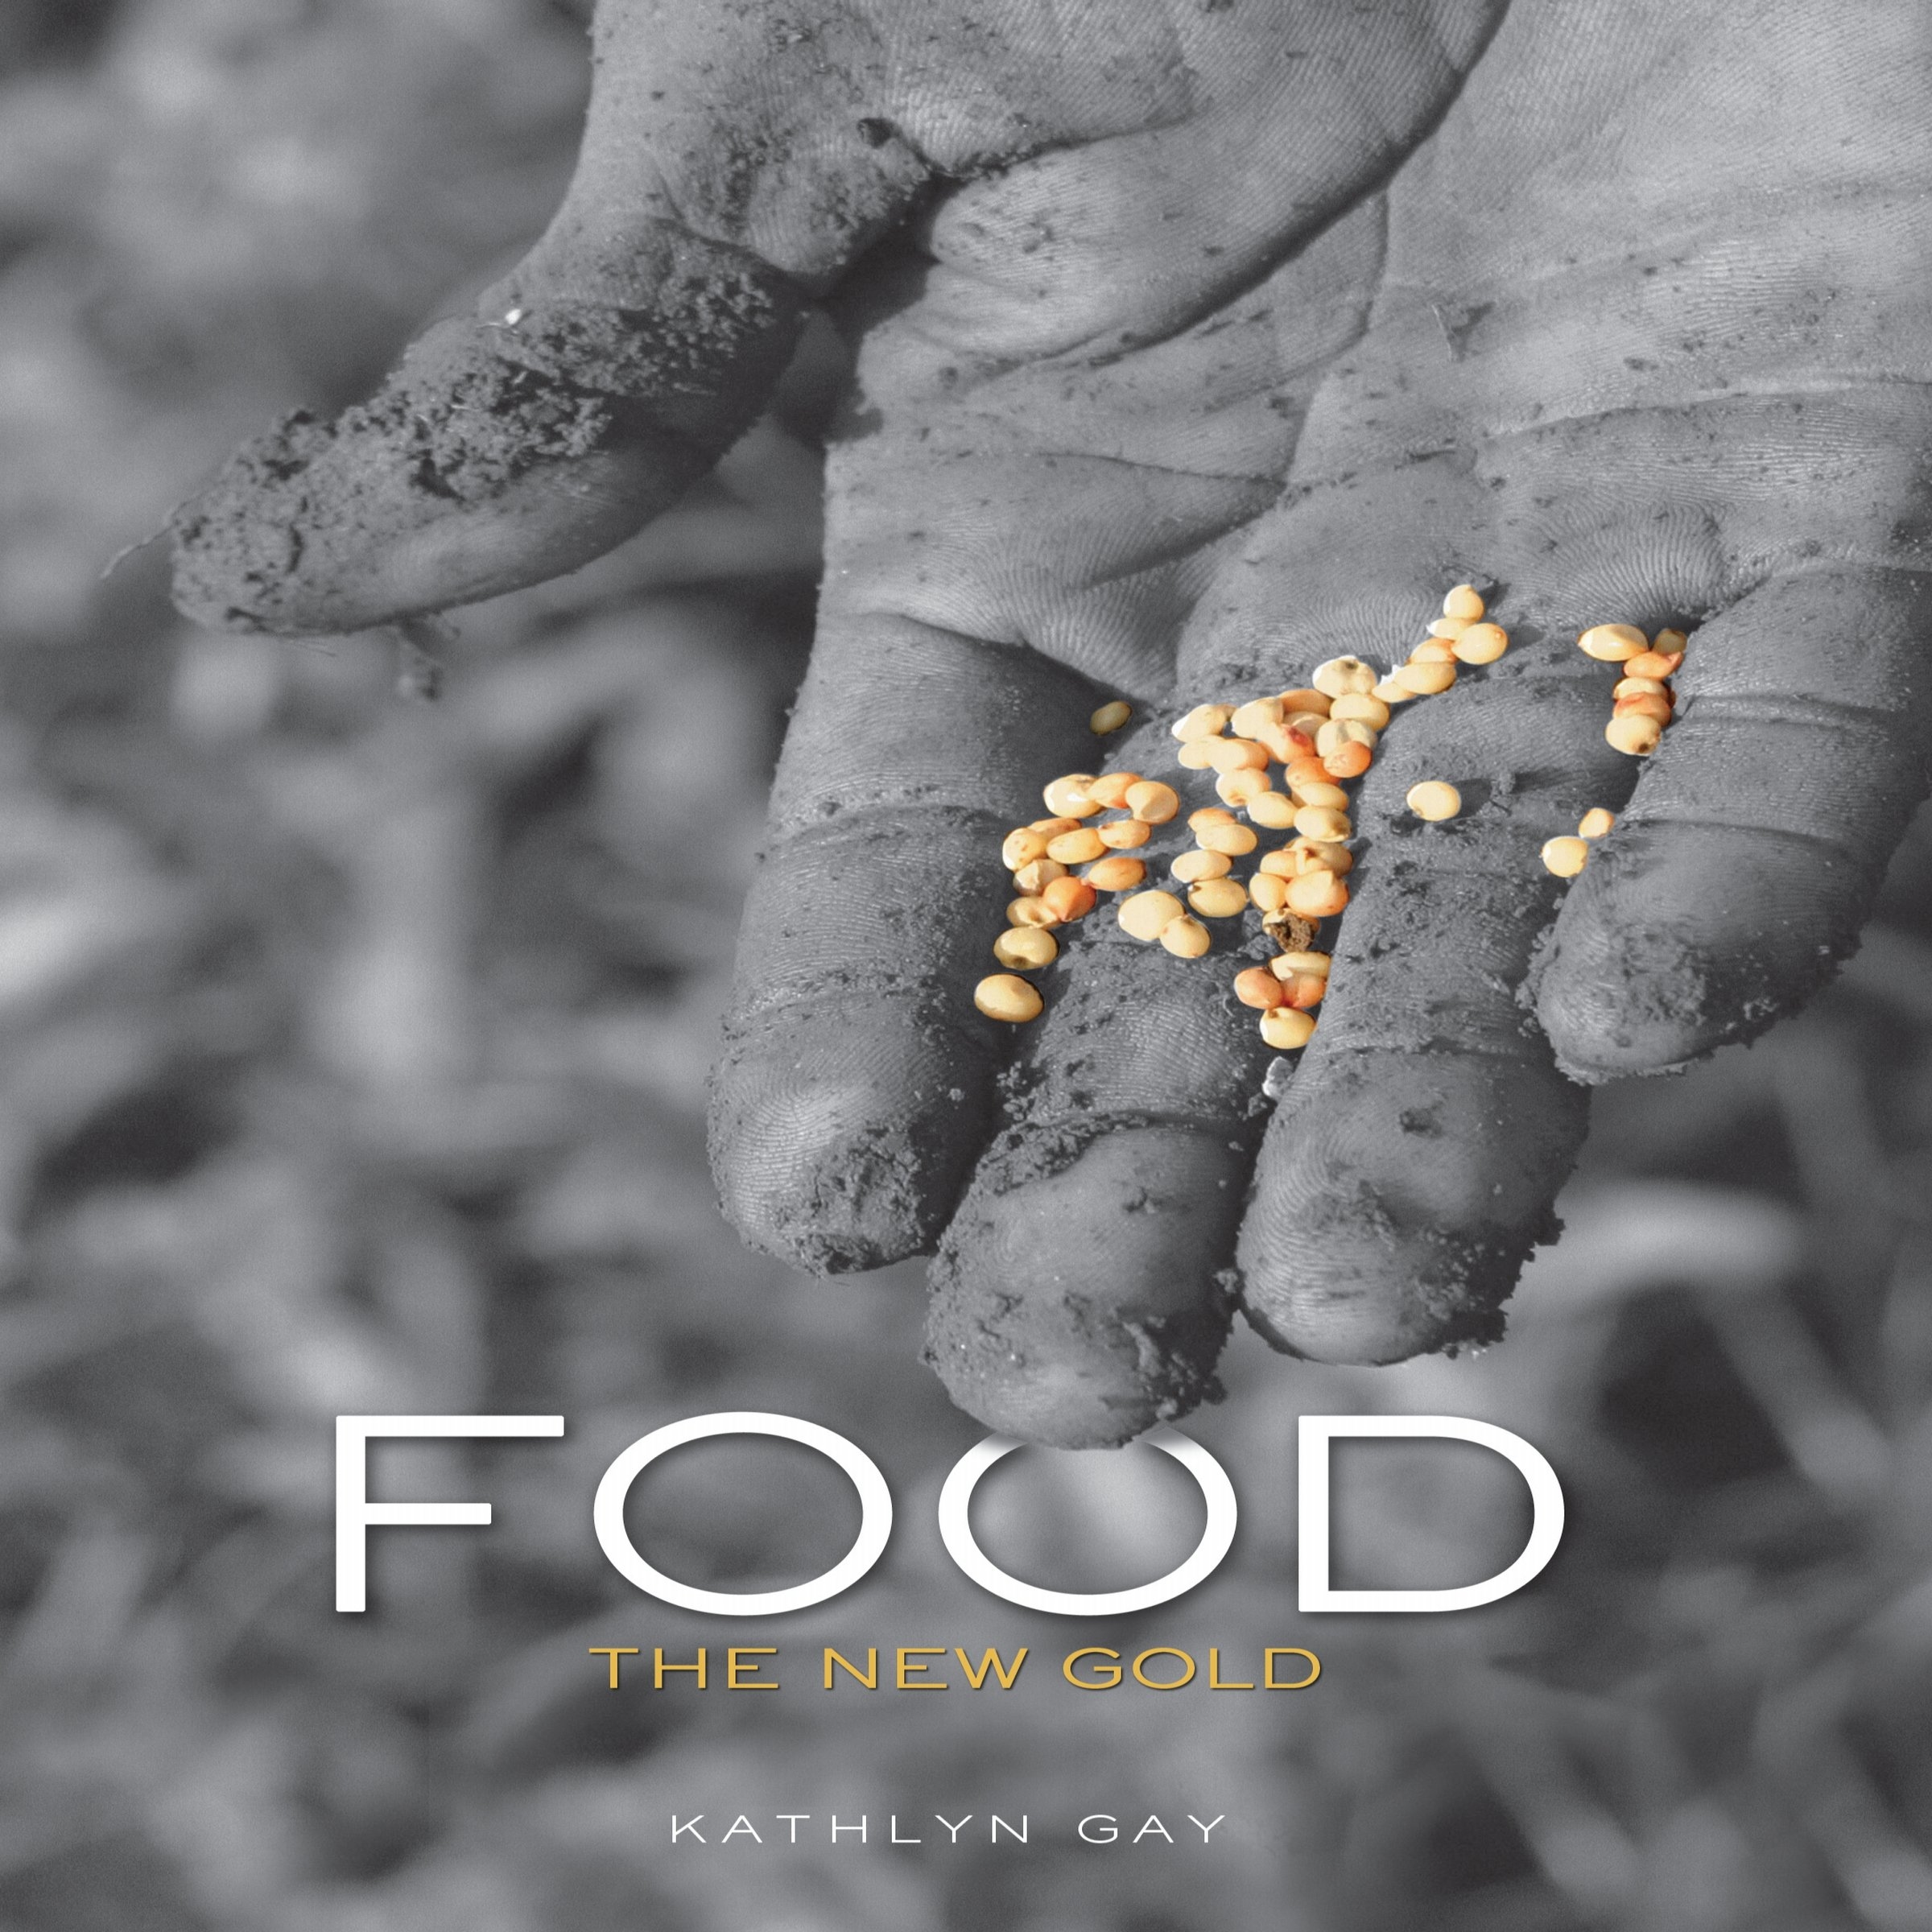 Food: The New Gold